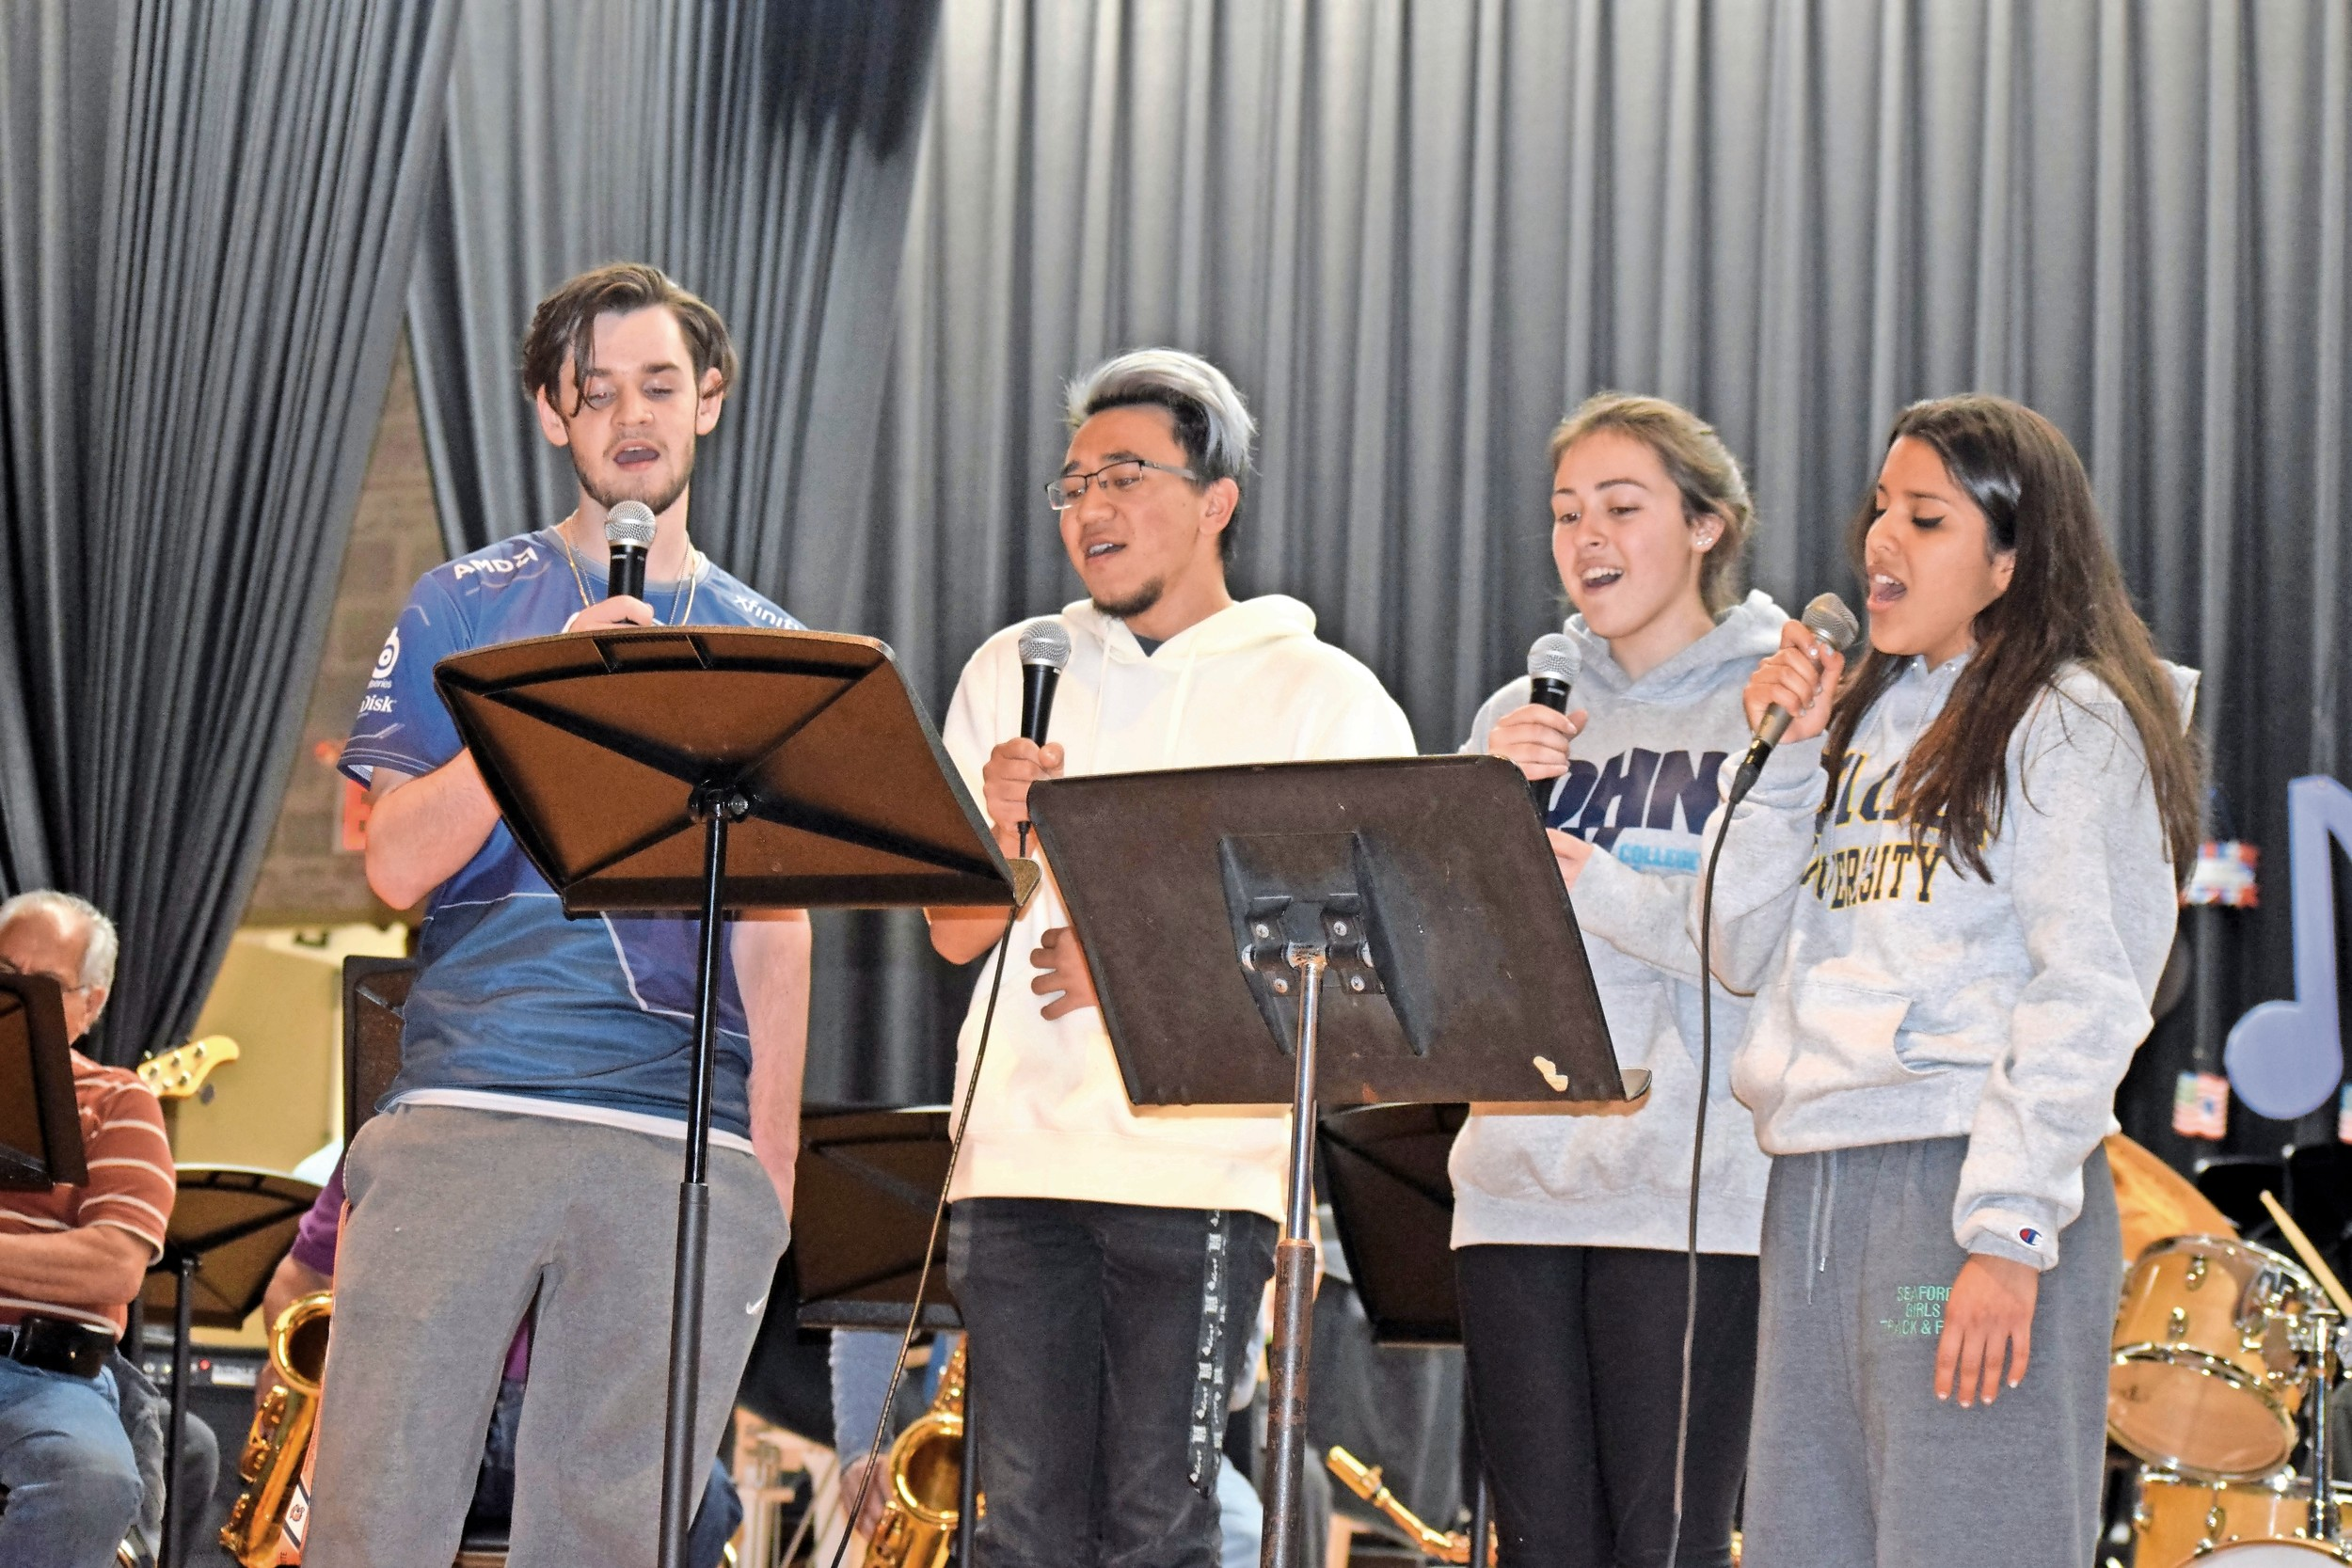 Seaford High School seniors sang in the chorus at the band's annual spring concert on May 13. Scott Wilson, left, Christopher Ho, Kayla Marino and Elissa Castro performed.